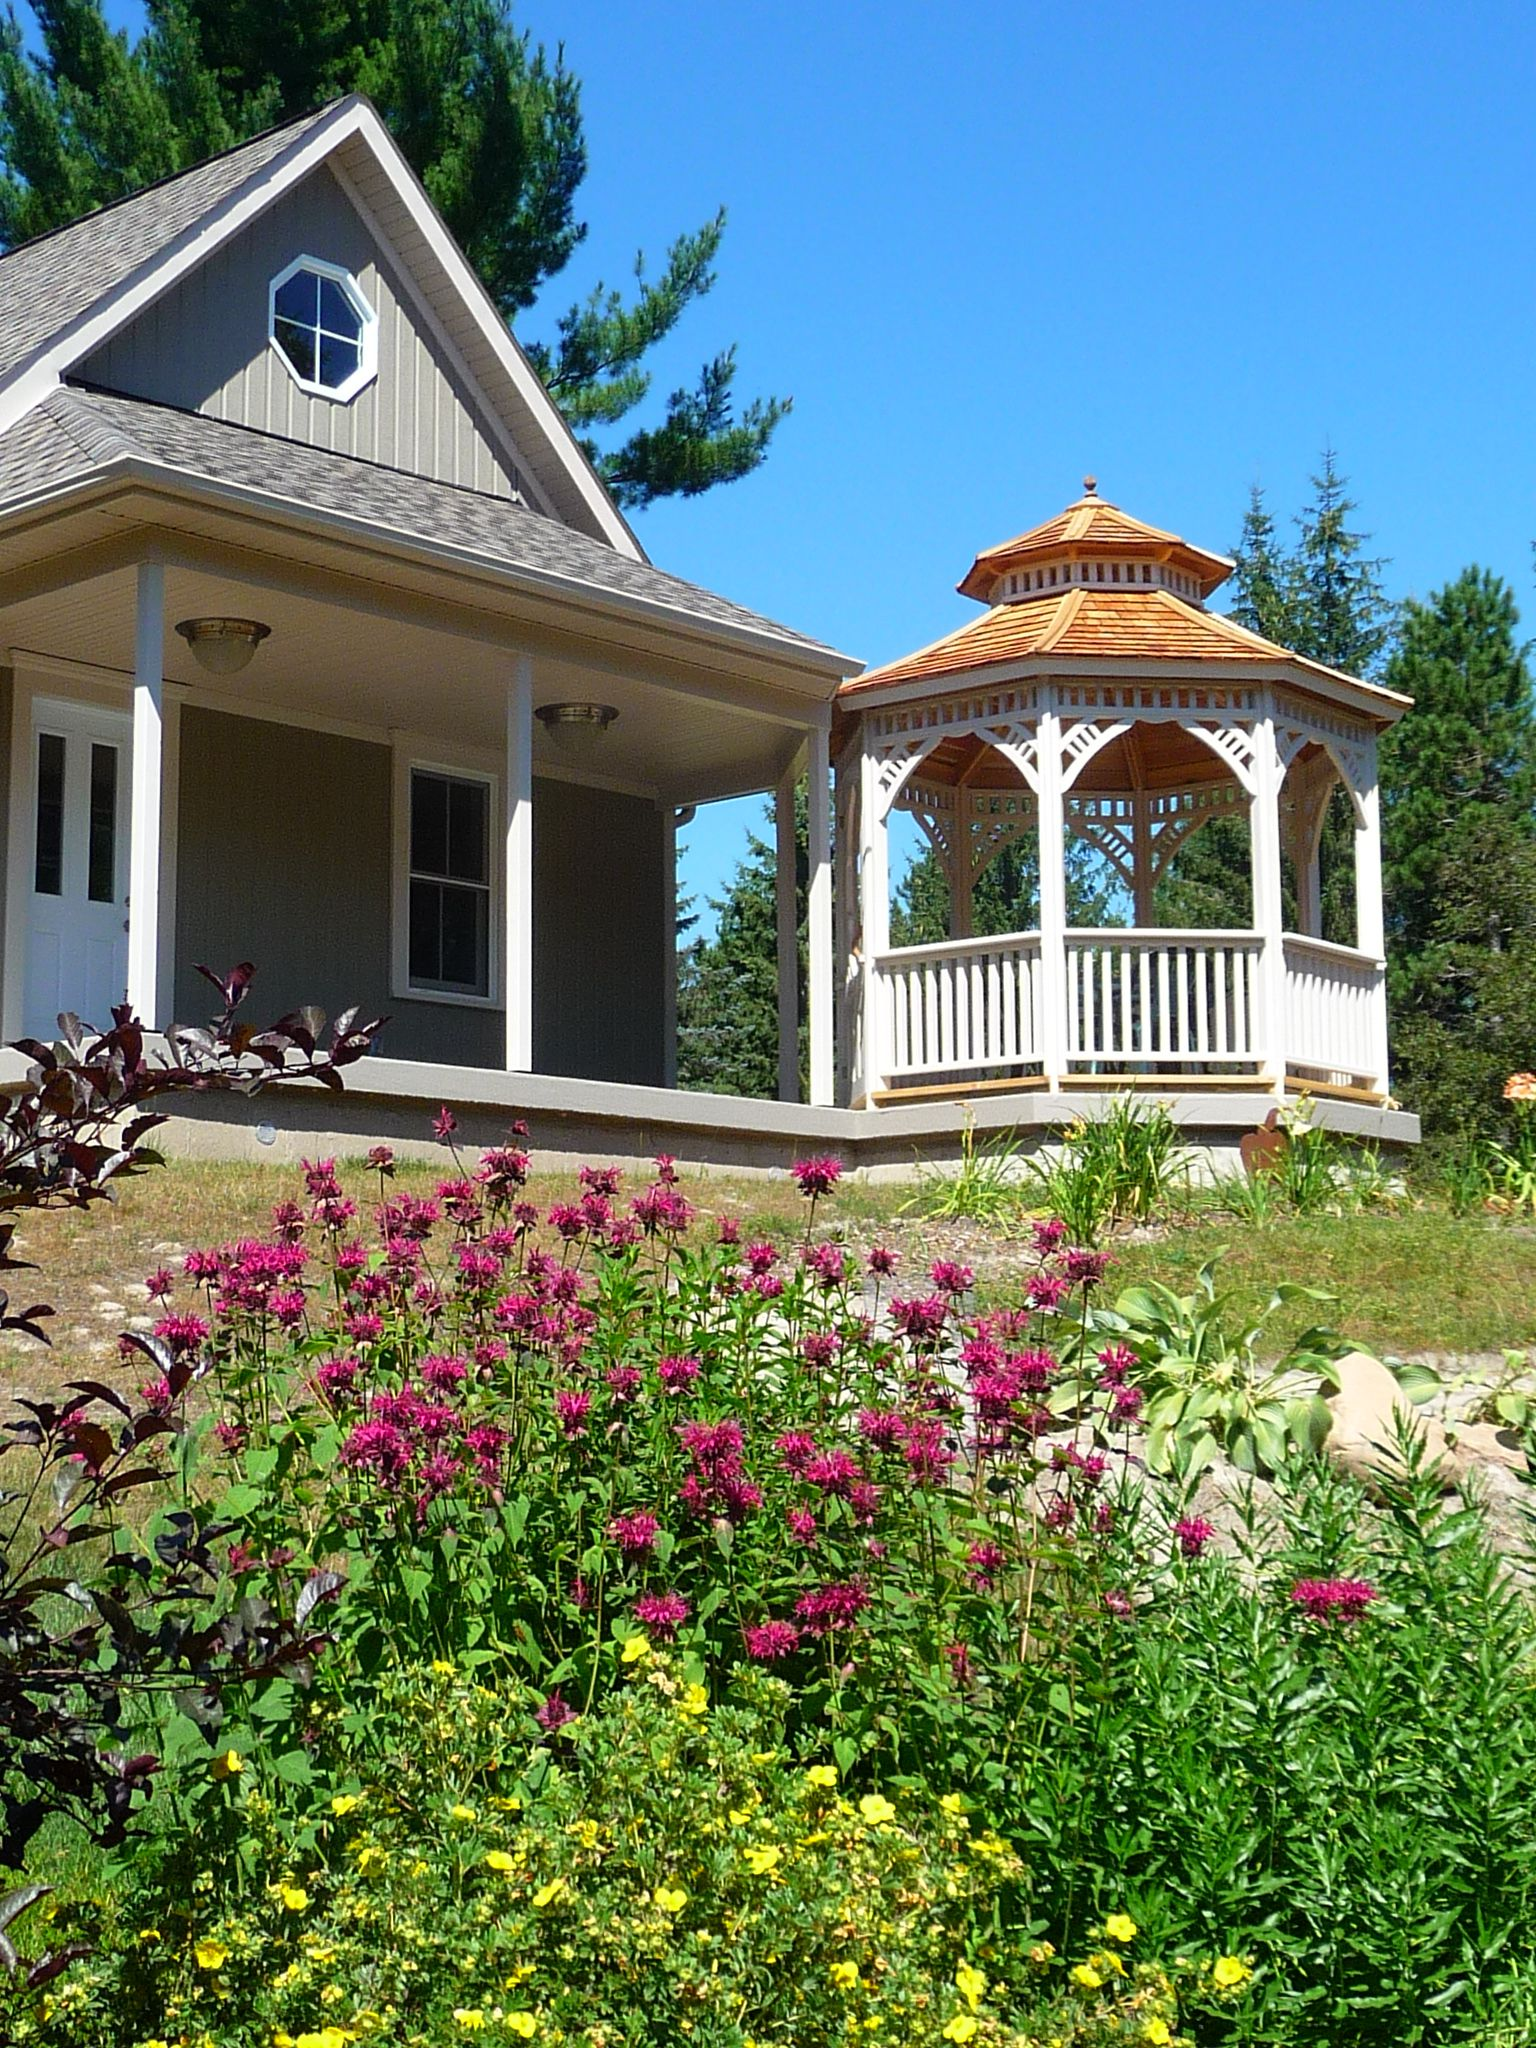 One of our top picks for the best prefabricated gazebo design - Victorian by Summerwood